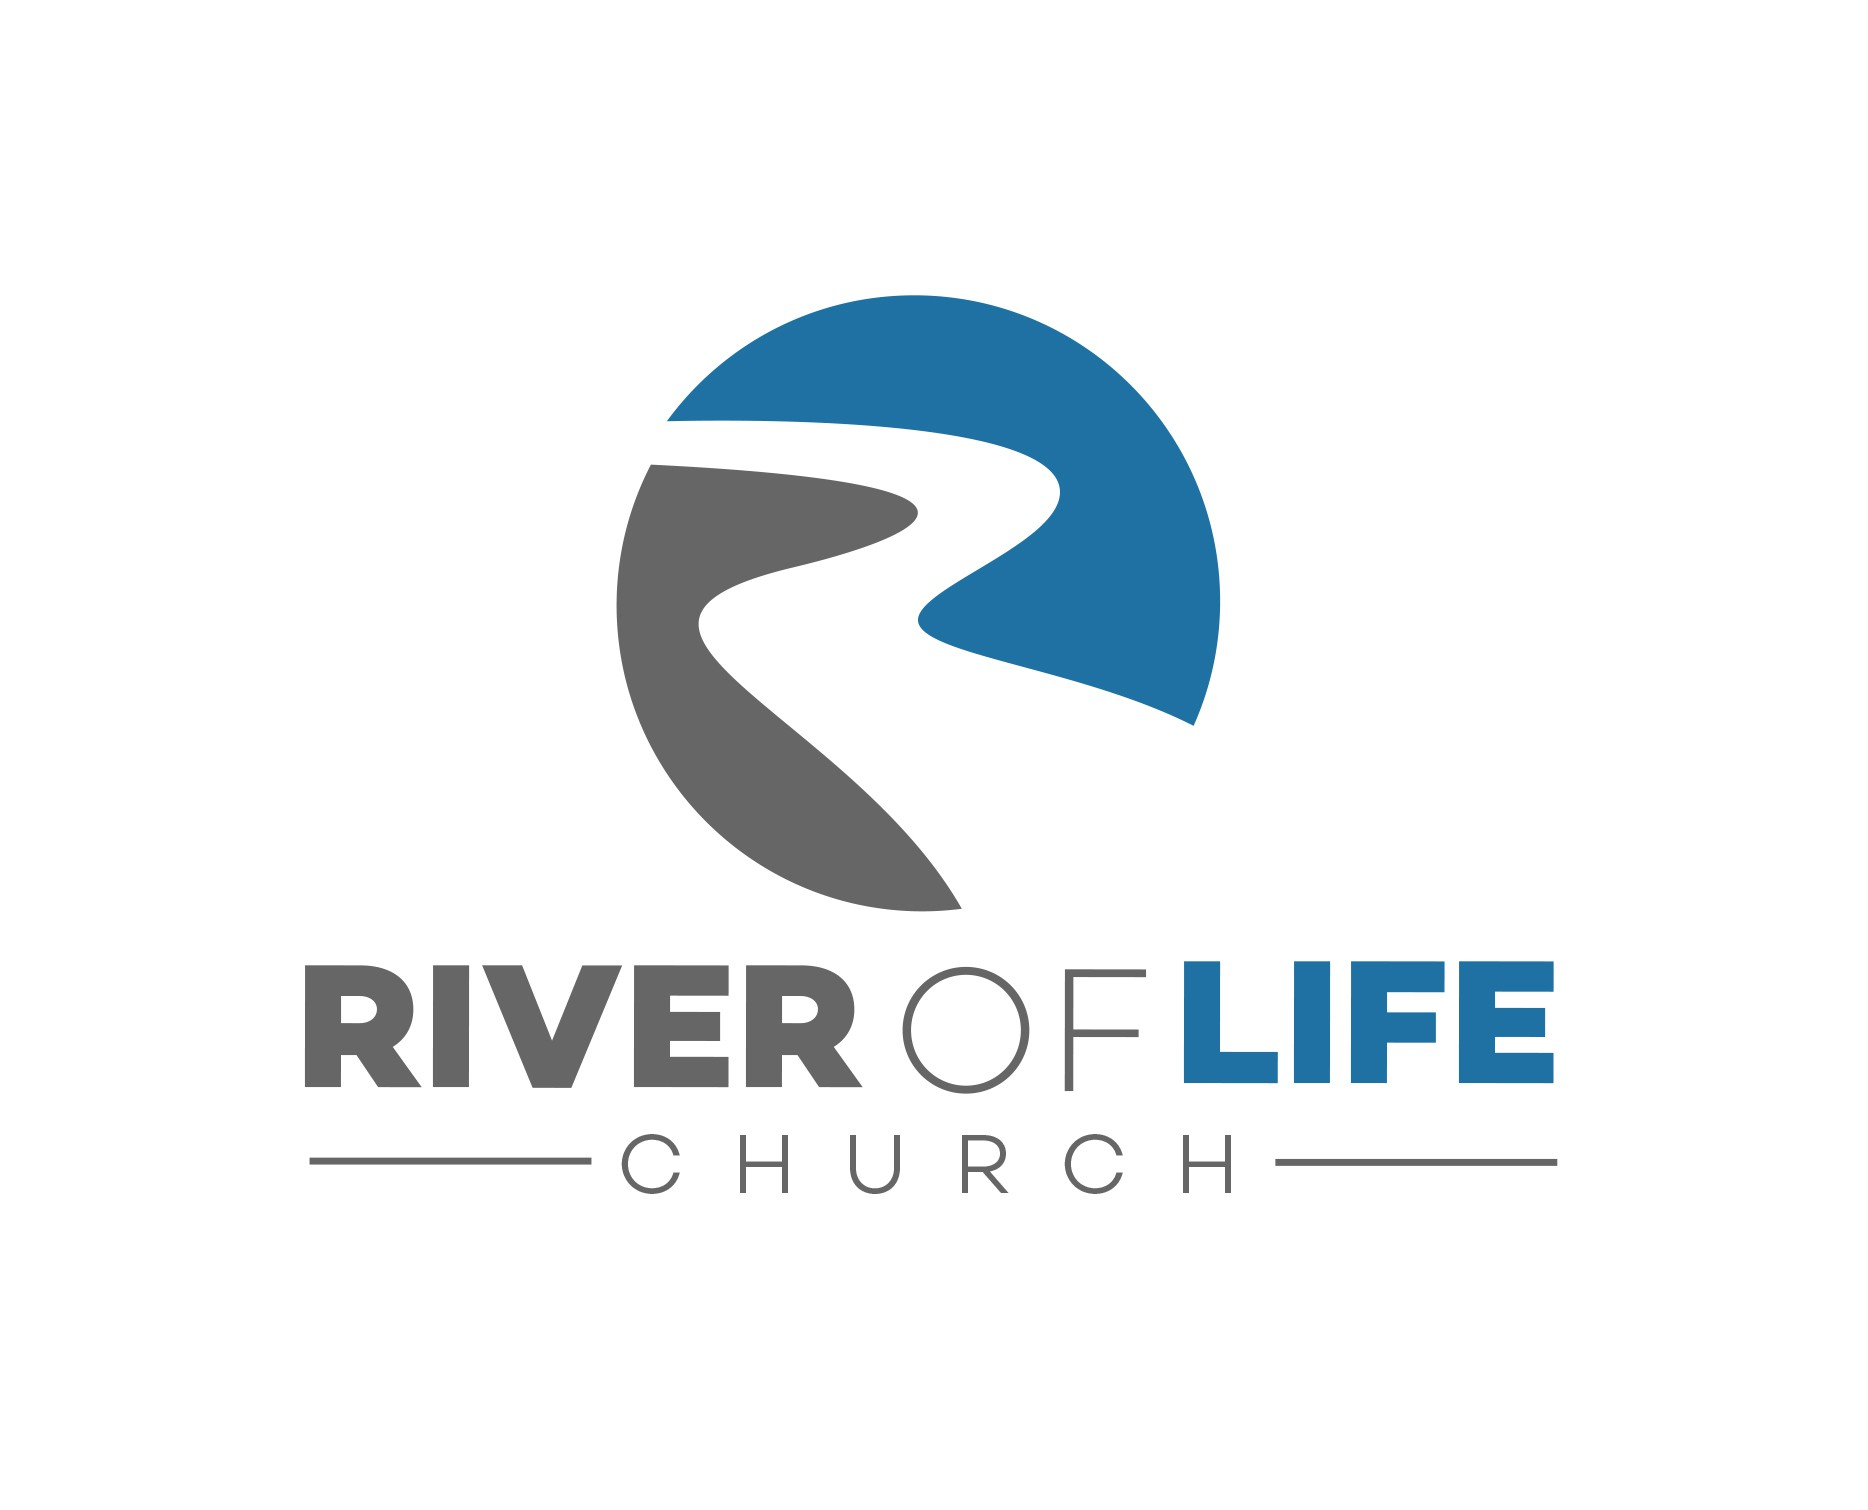 River of Life Church needs a clean, new logo